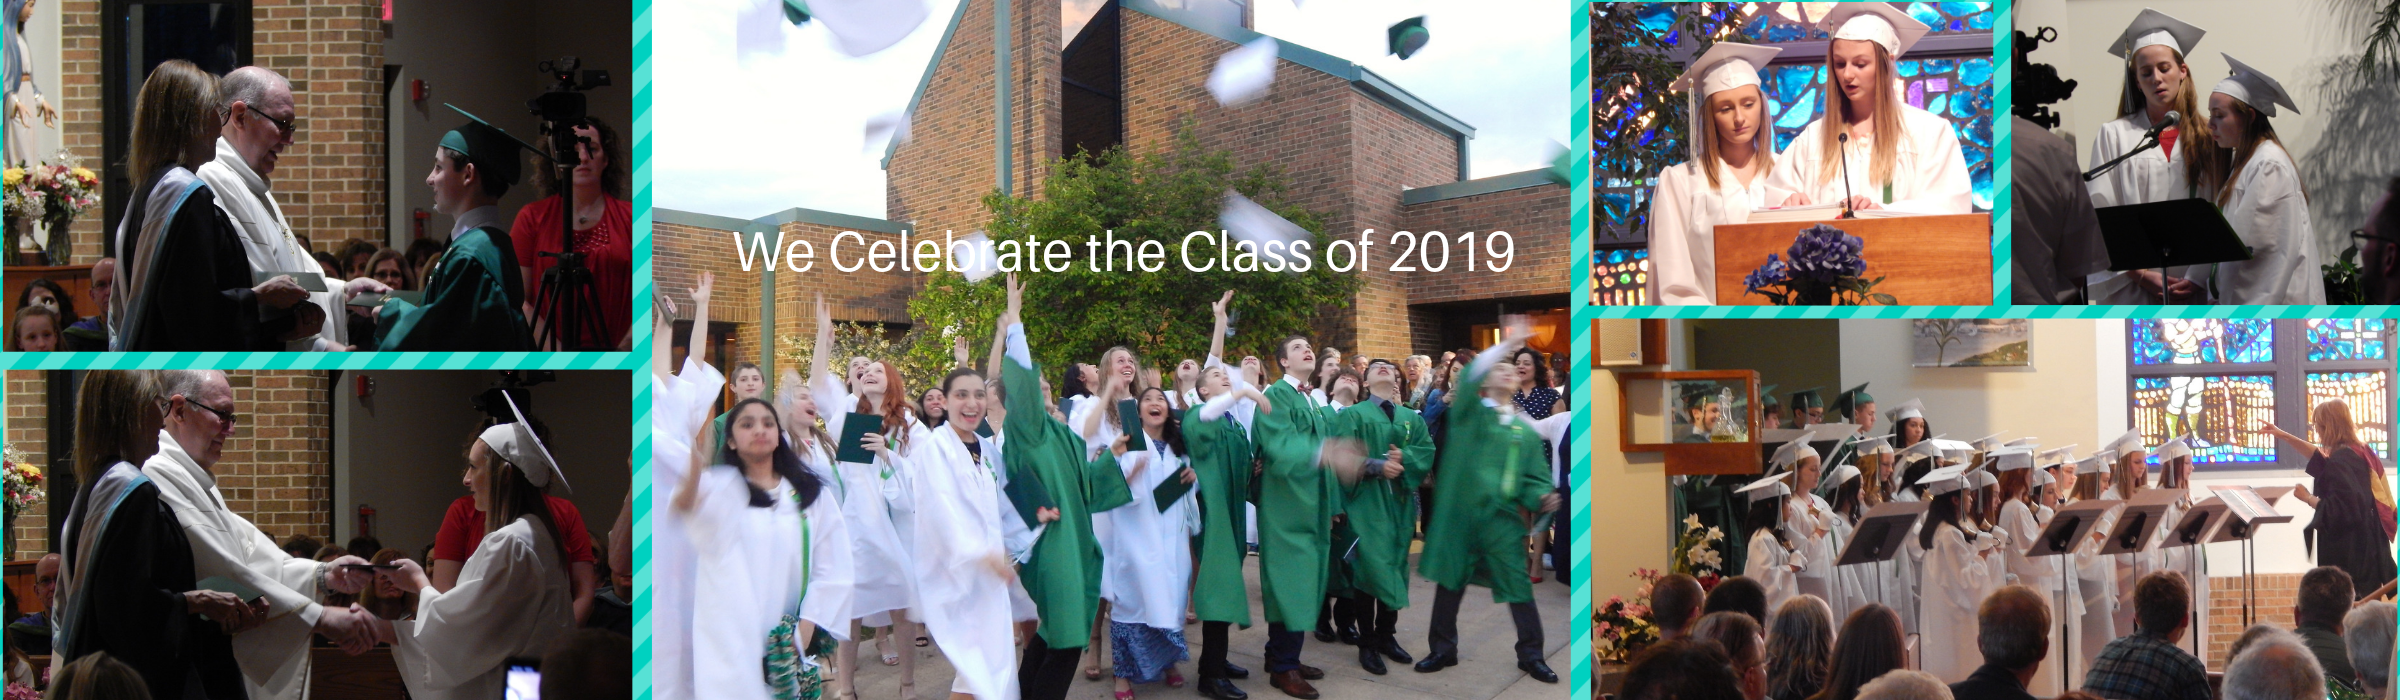 We-Celebrate-the-Class-of-2019